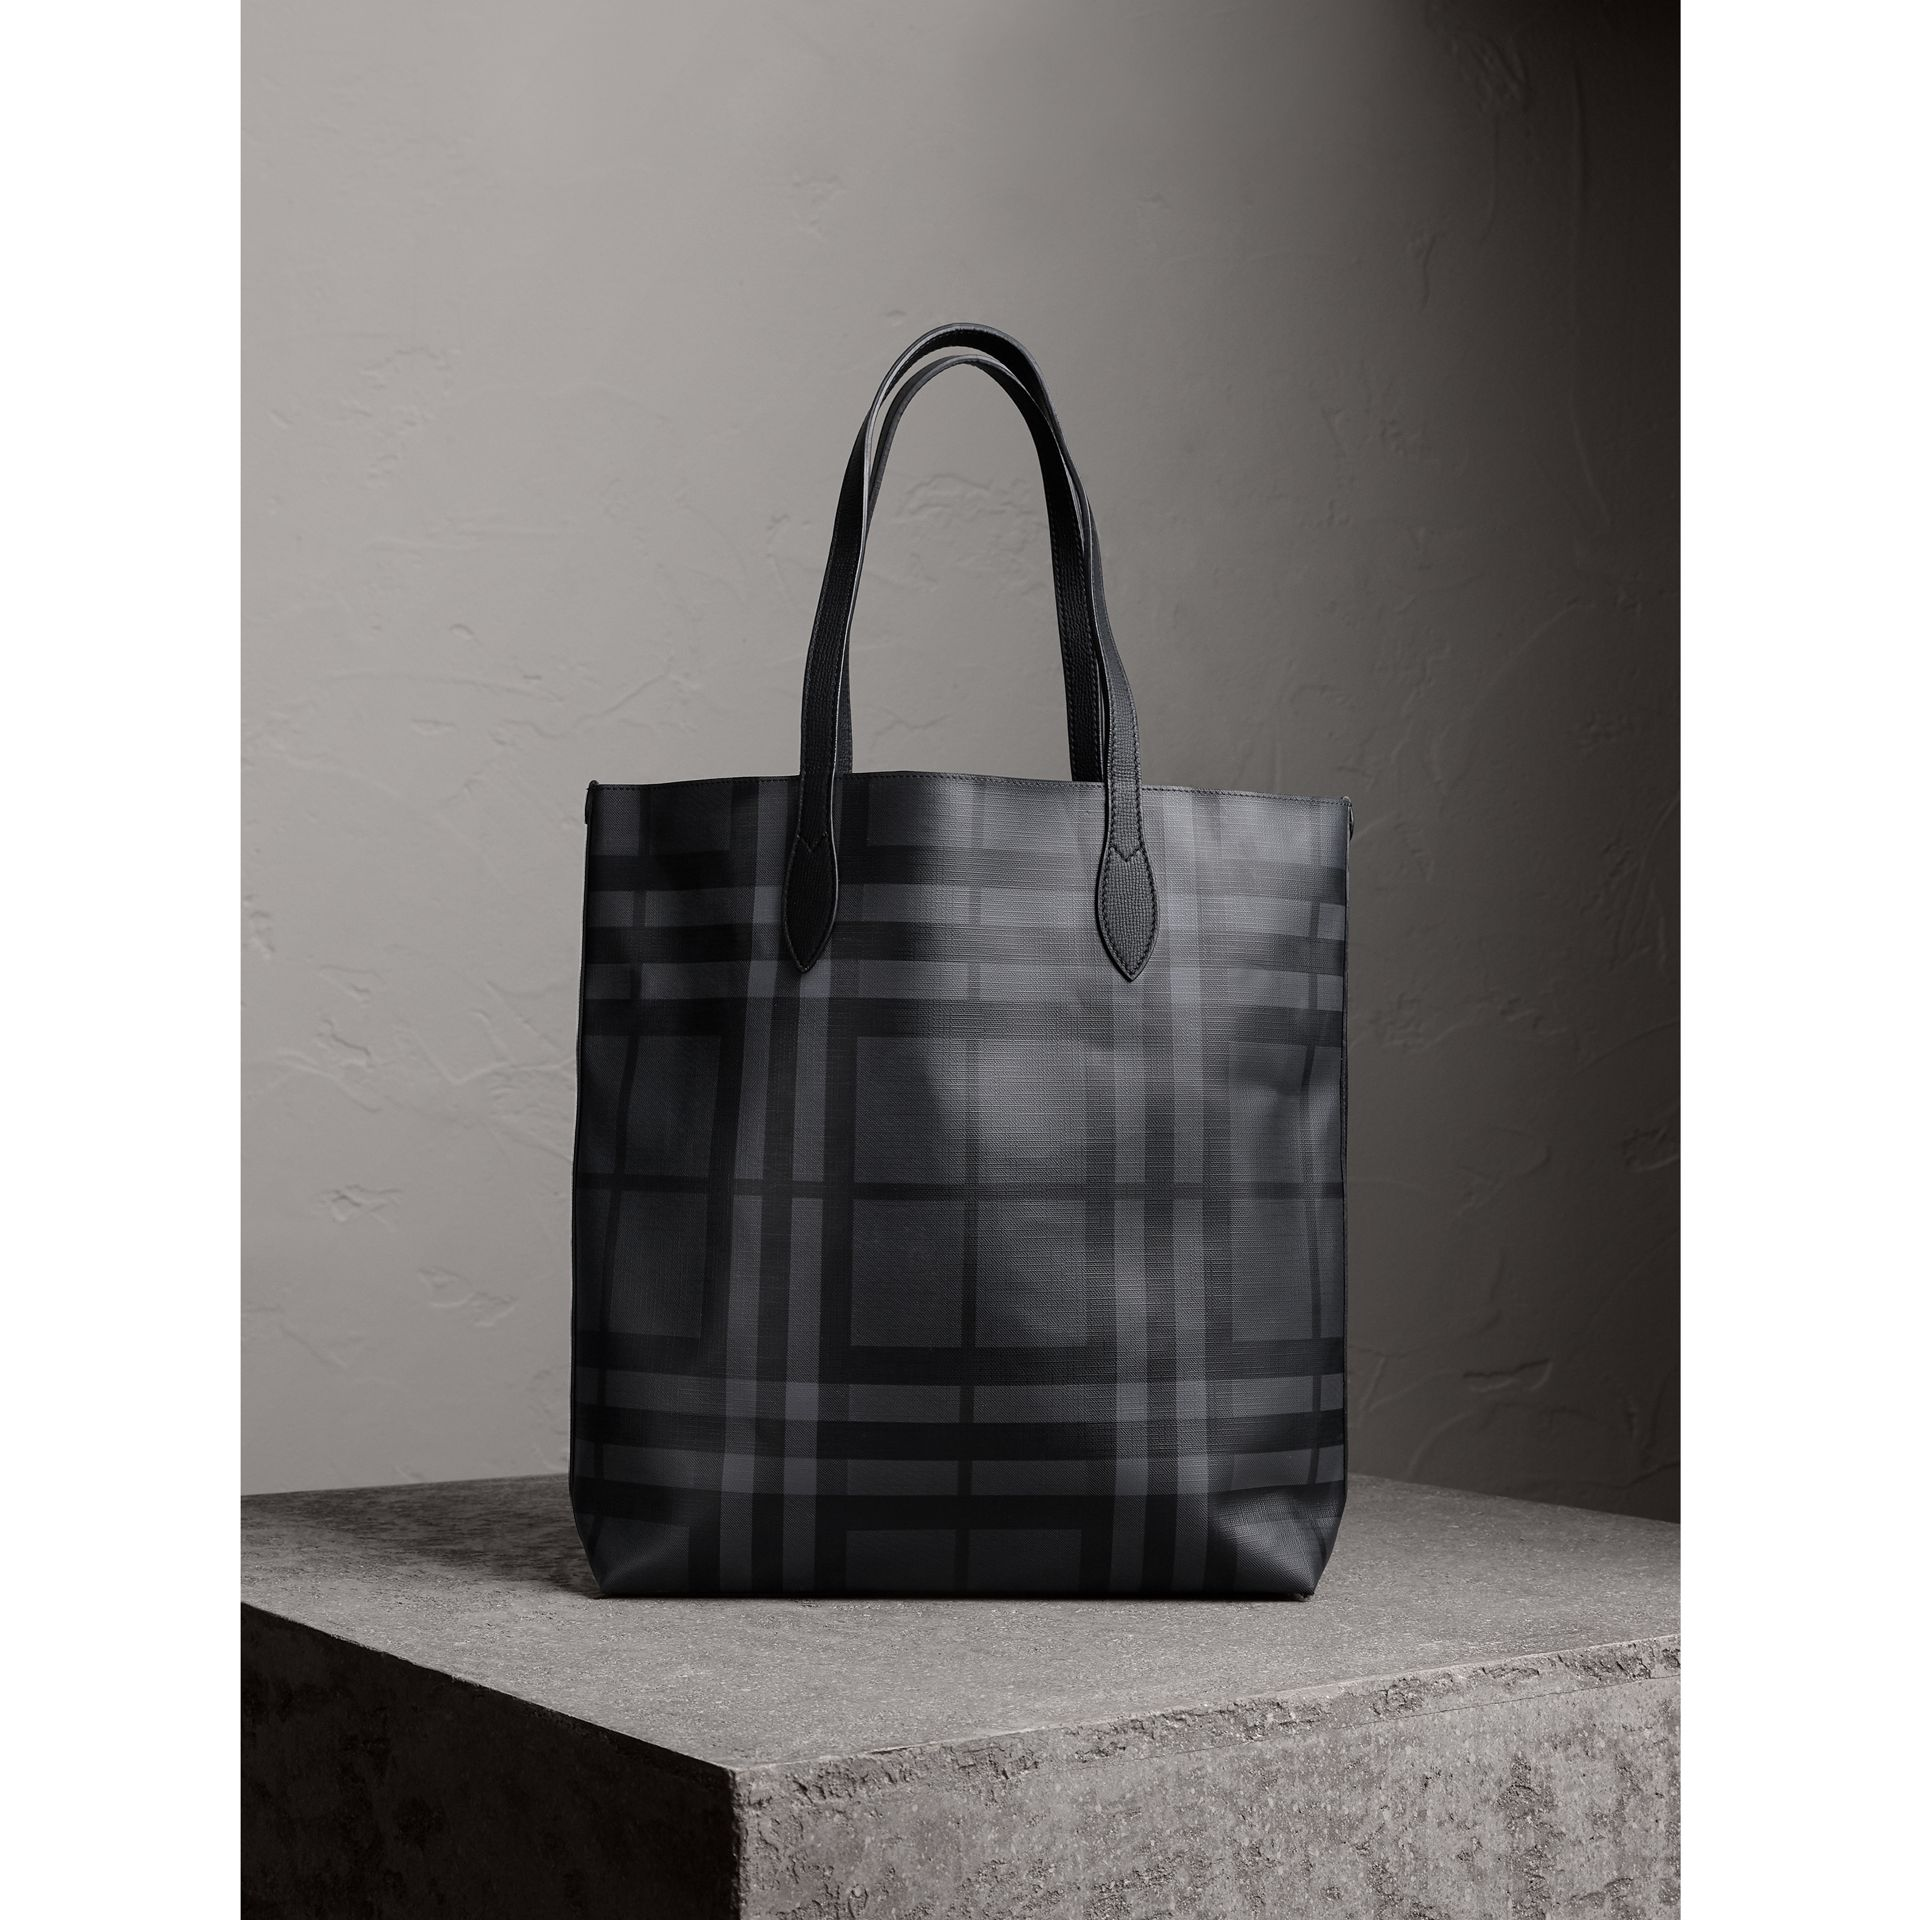 Burberry Charcoal/Black Medium London Check and Leather Tote